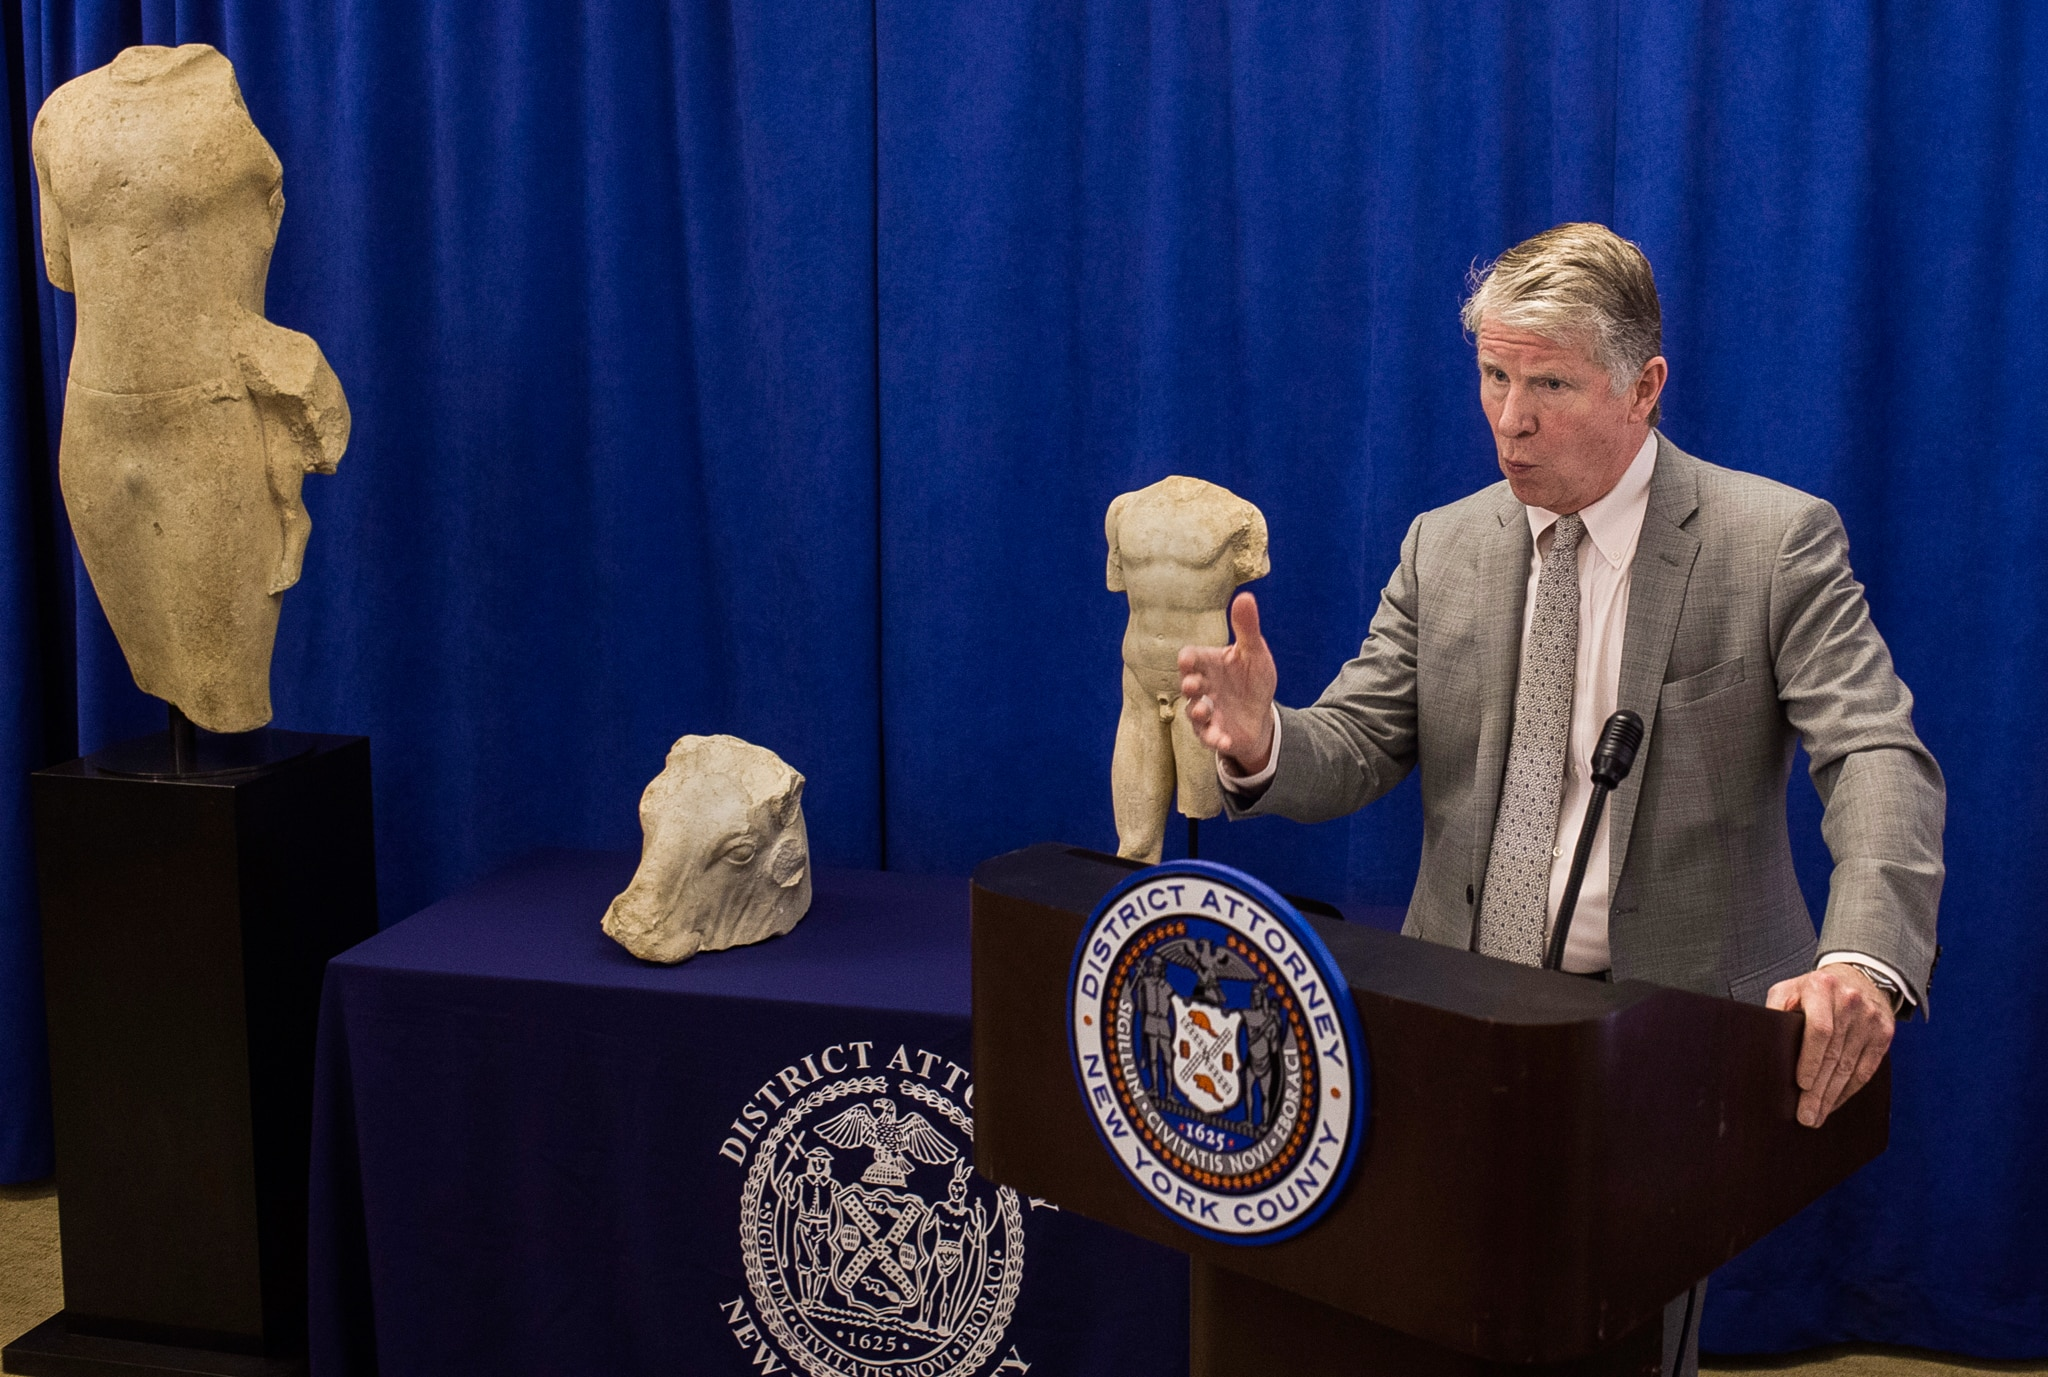 Man speaking at lectern with statues next to and behind him (© Andres Kudacki/AP Images)